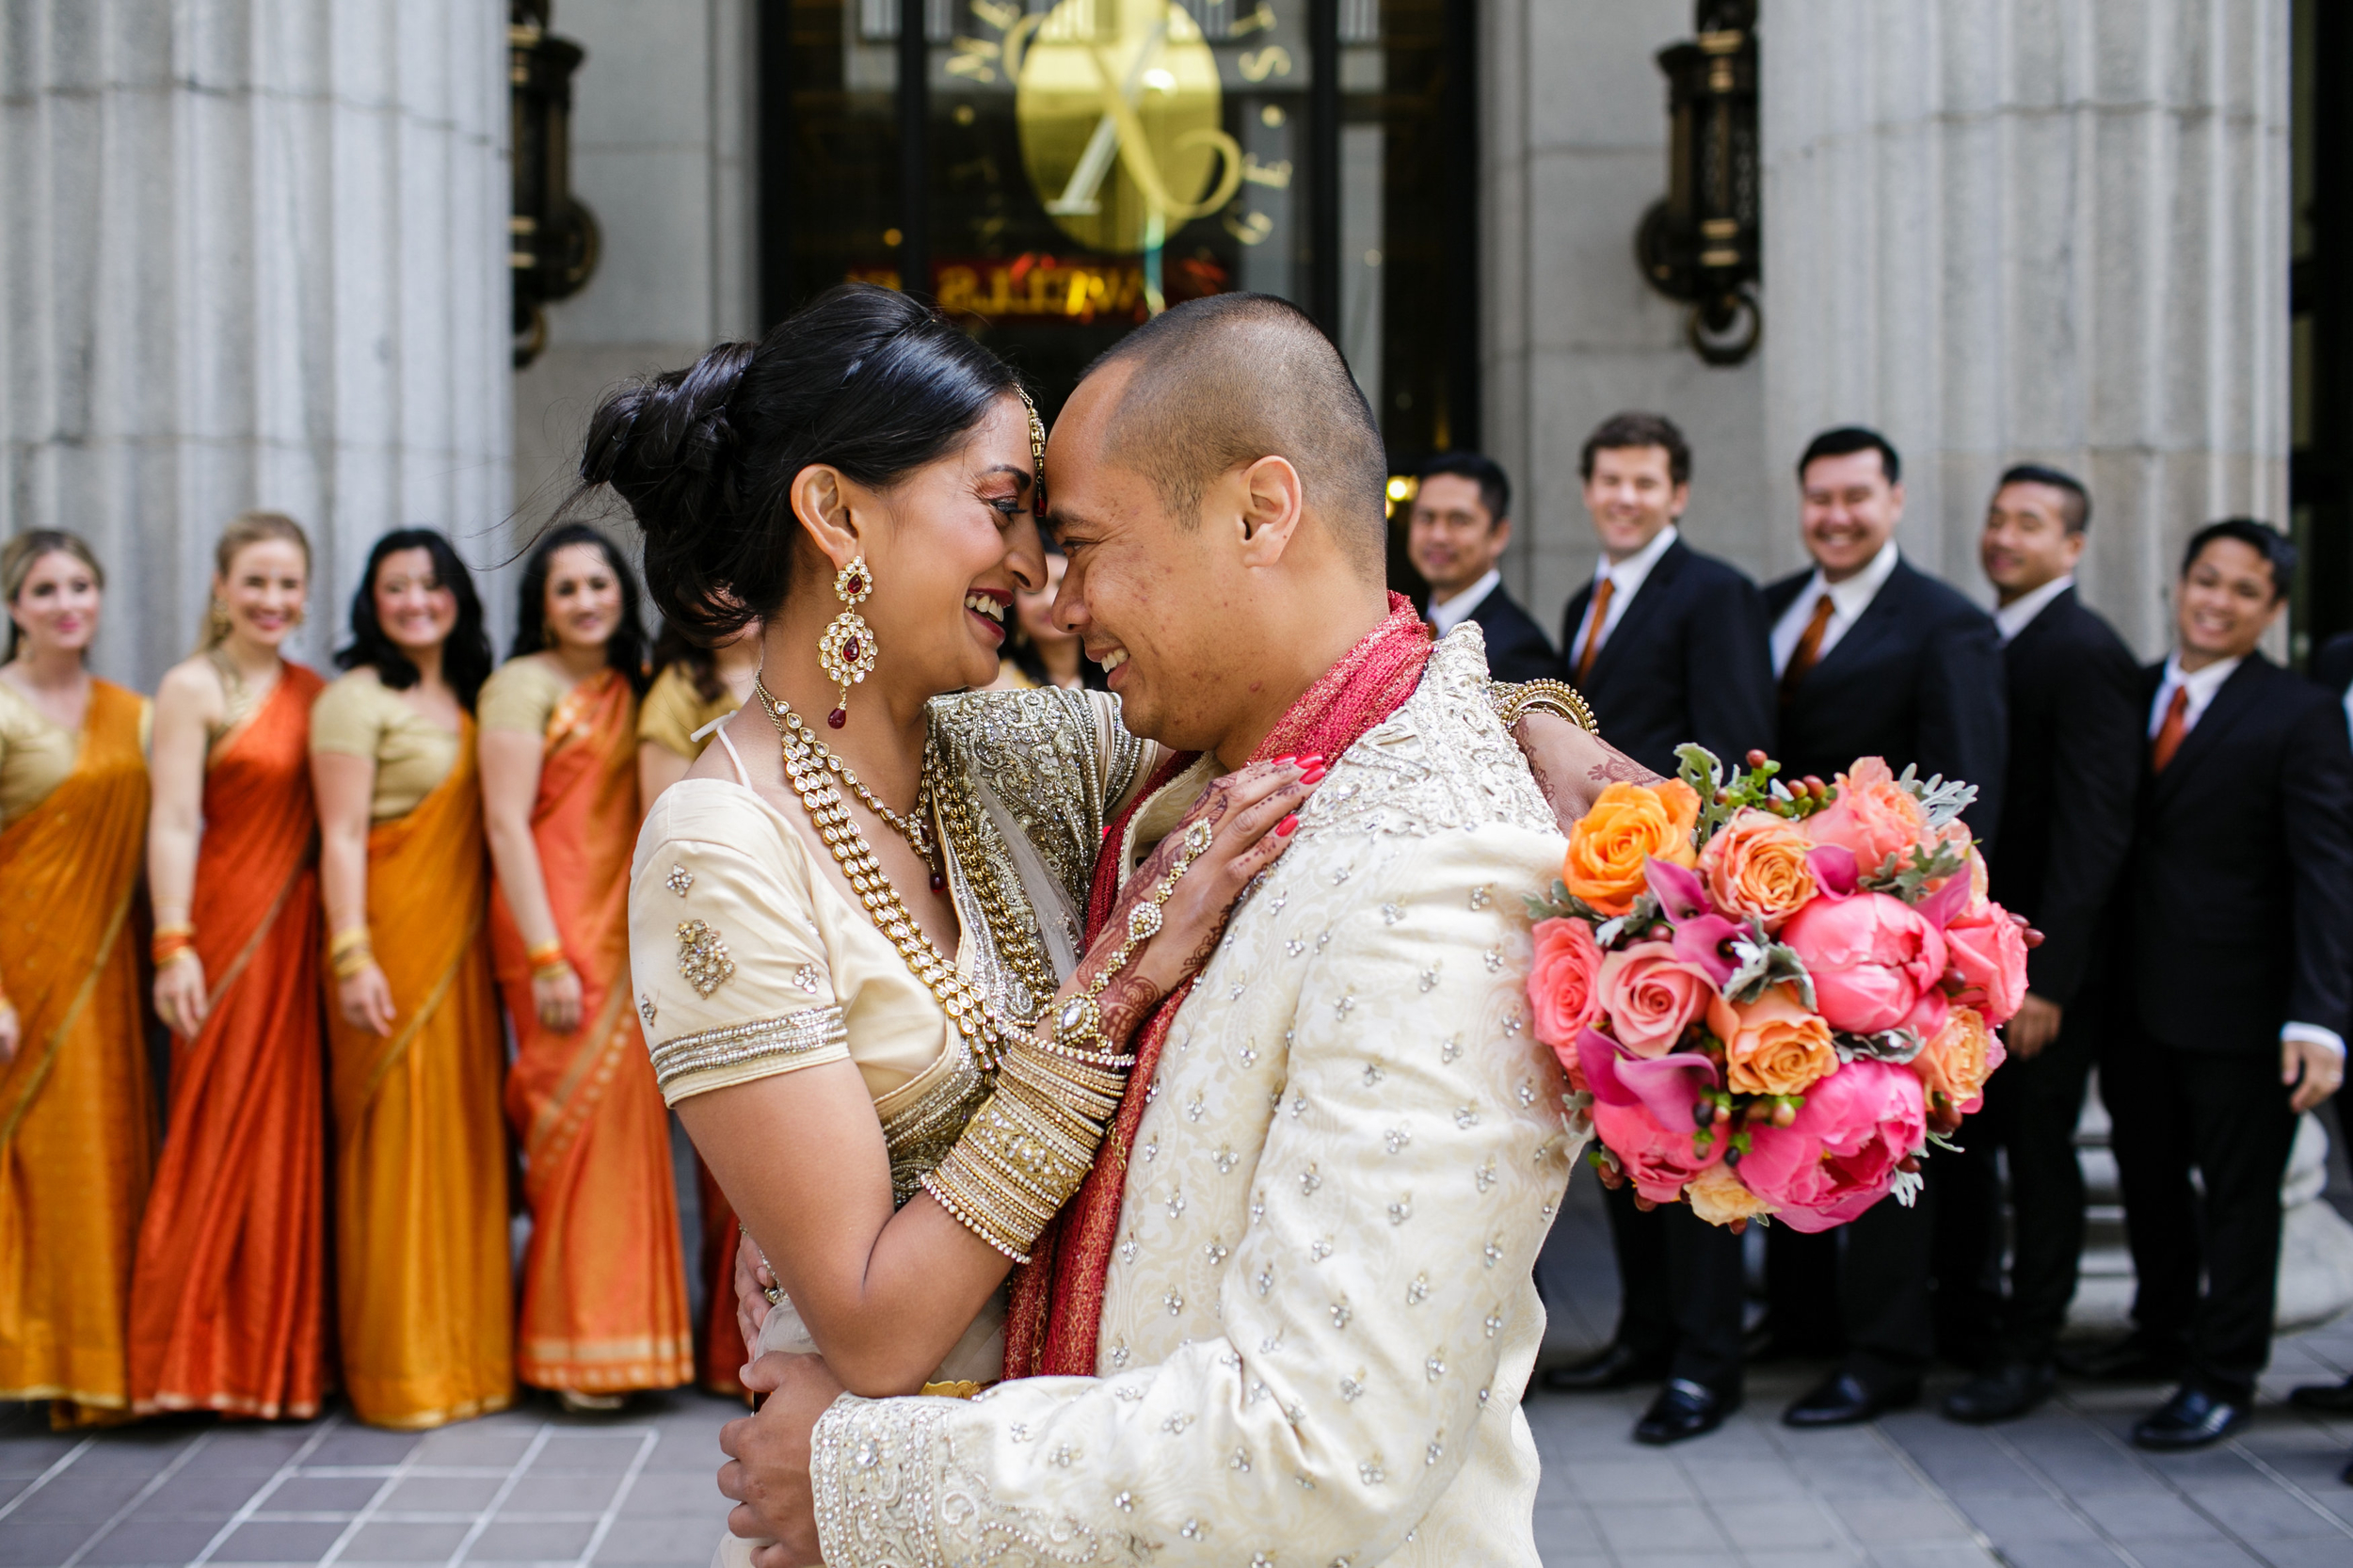 AnaisEvents_JihanCerdaPhotography_Priya-and-Jason - 038.jpg